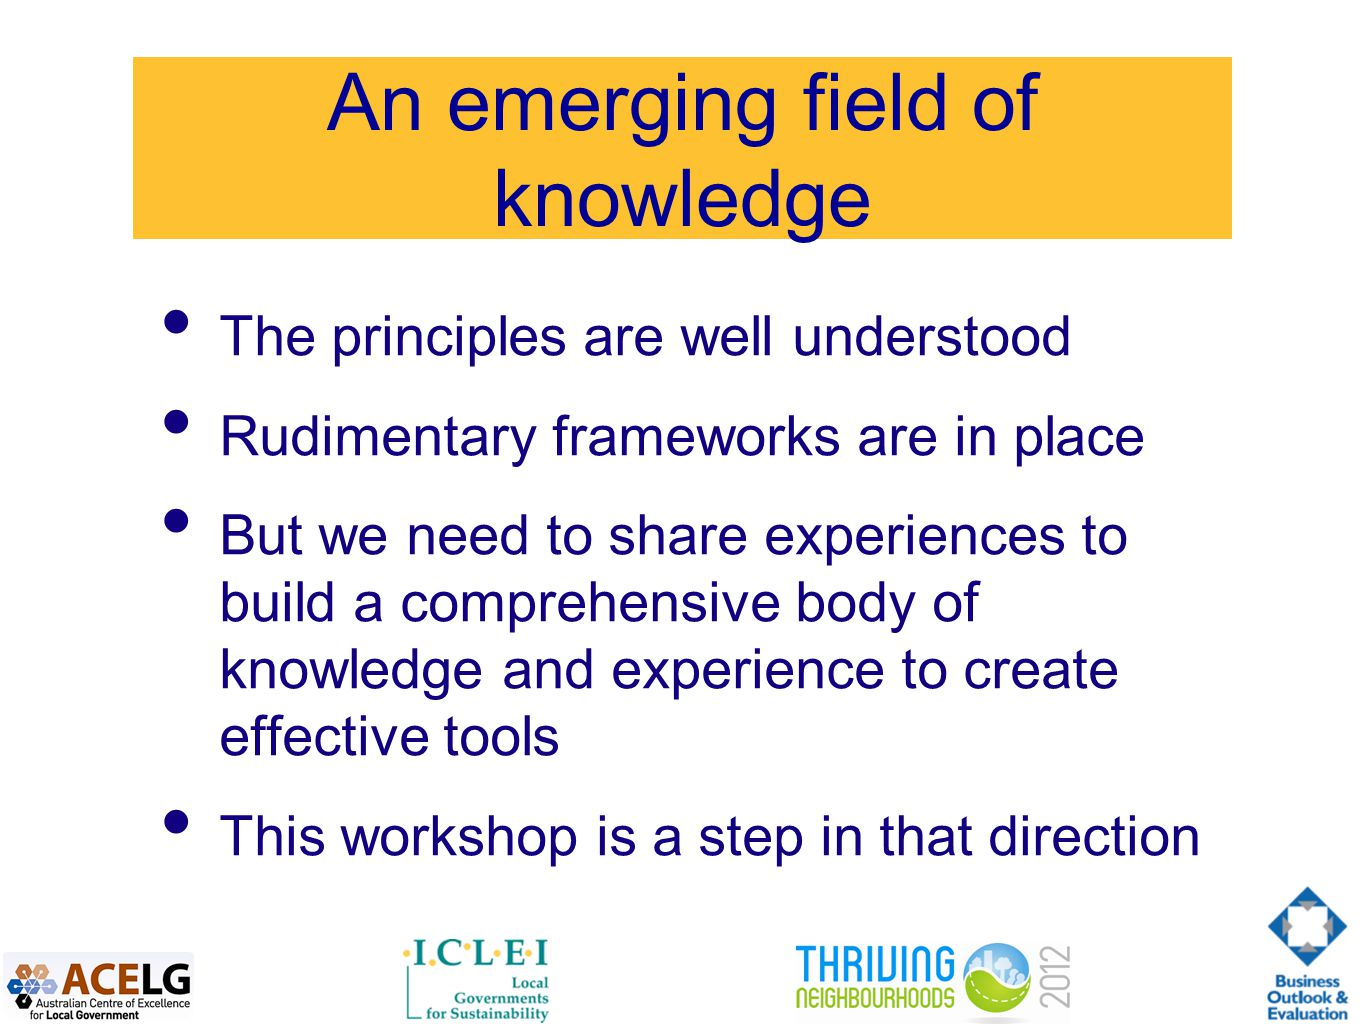 An emerging field of knowledge The principles are well understood Rudimentary frameworks are in place But we need to share experiences to build a comprehensive body of knowledge and experience to create effective tools This workshop is a step in that direction